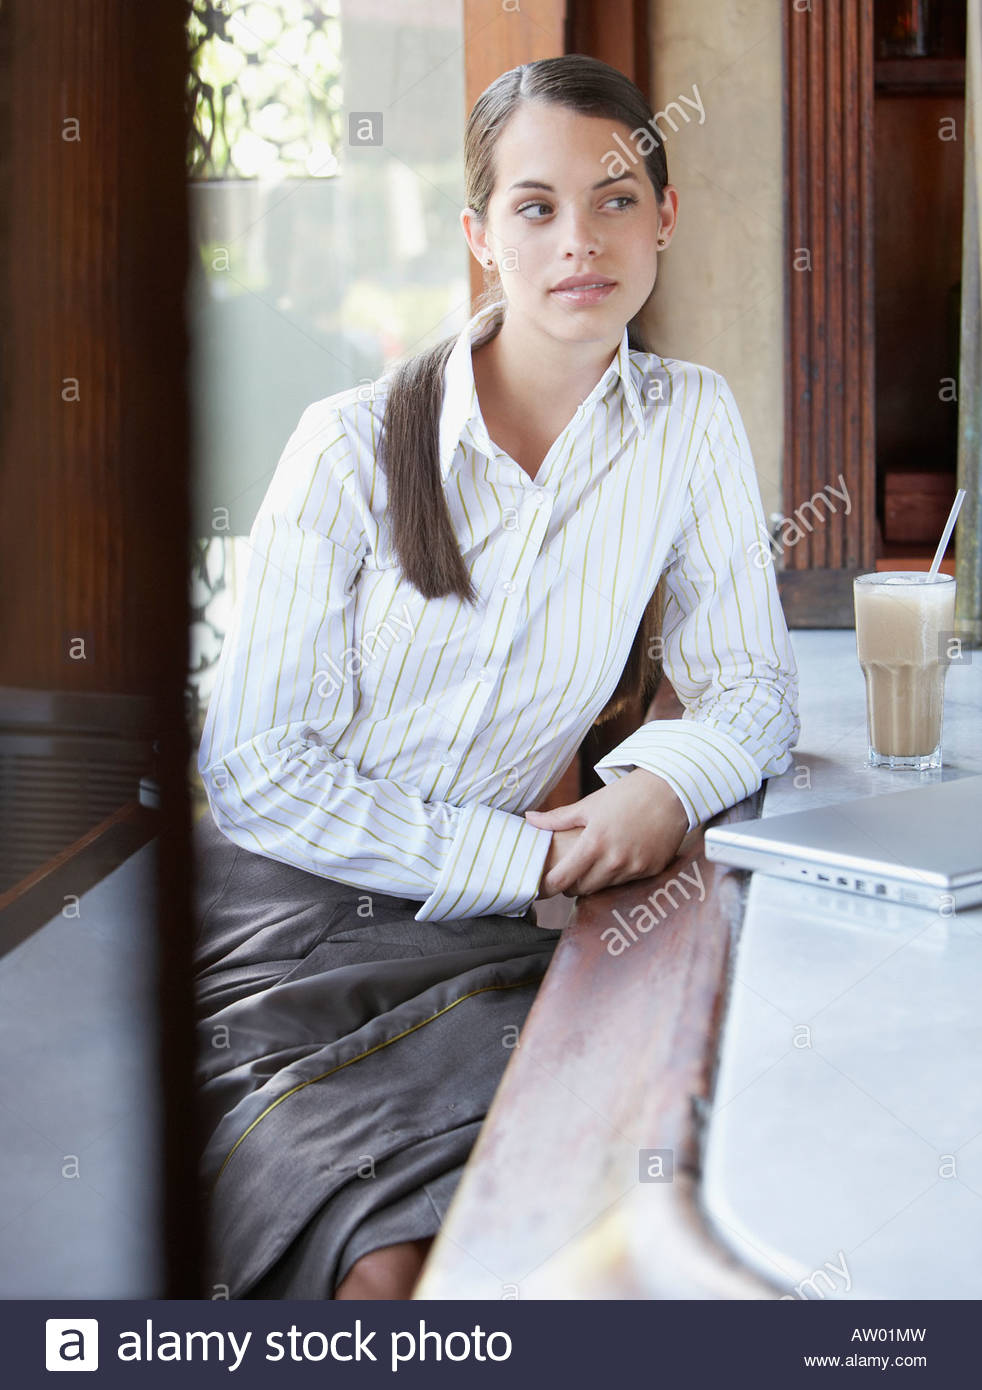 Businesswoman sitting at bar with laptop - Stock Image